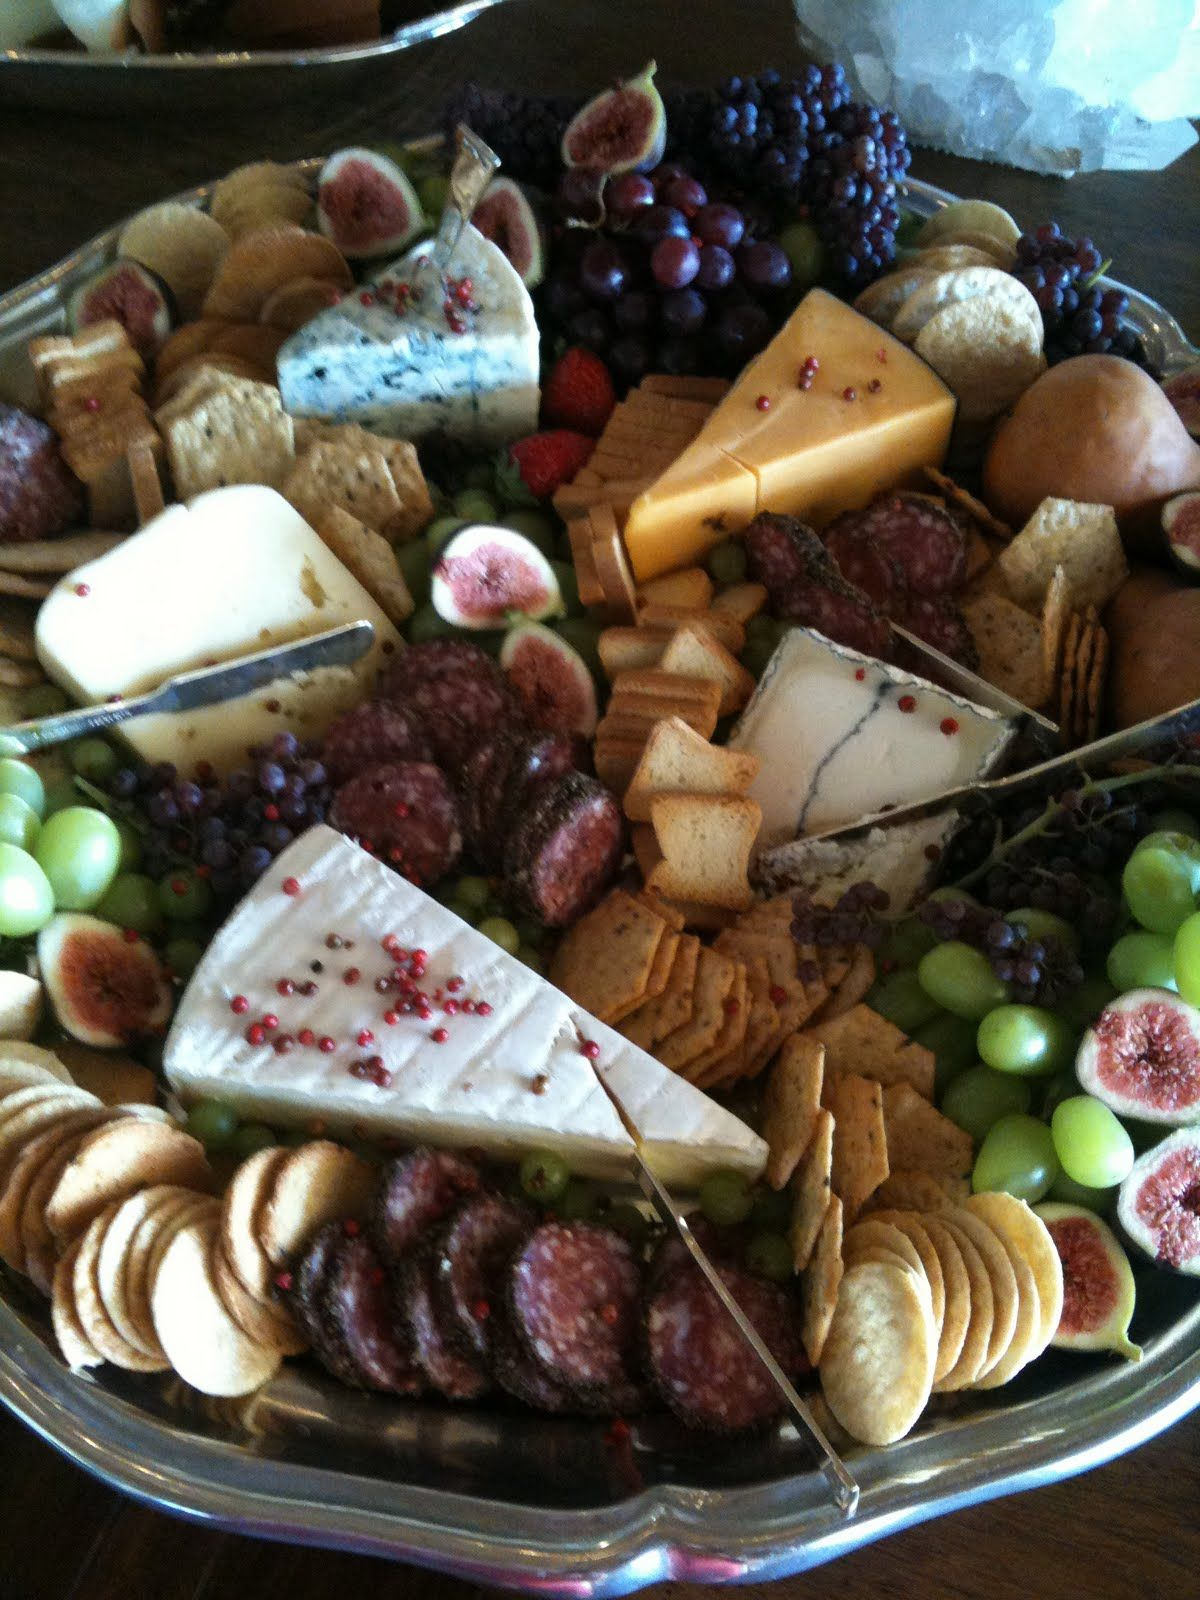 Tagliere Tiers Maximum Impact Cheese Platter For All Events A Fruit Cheese